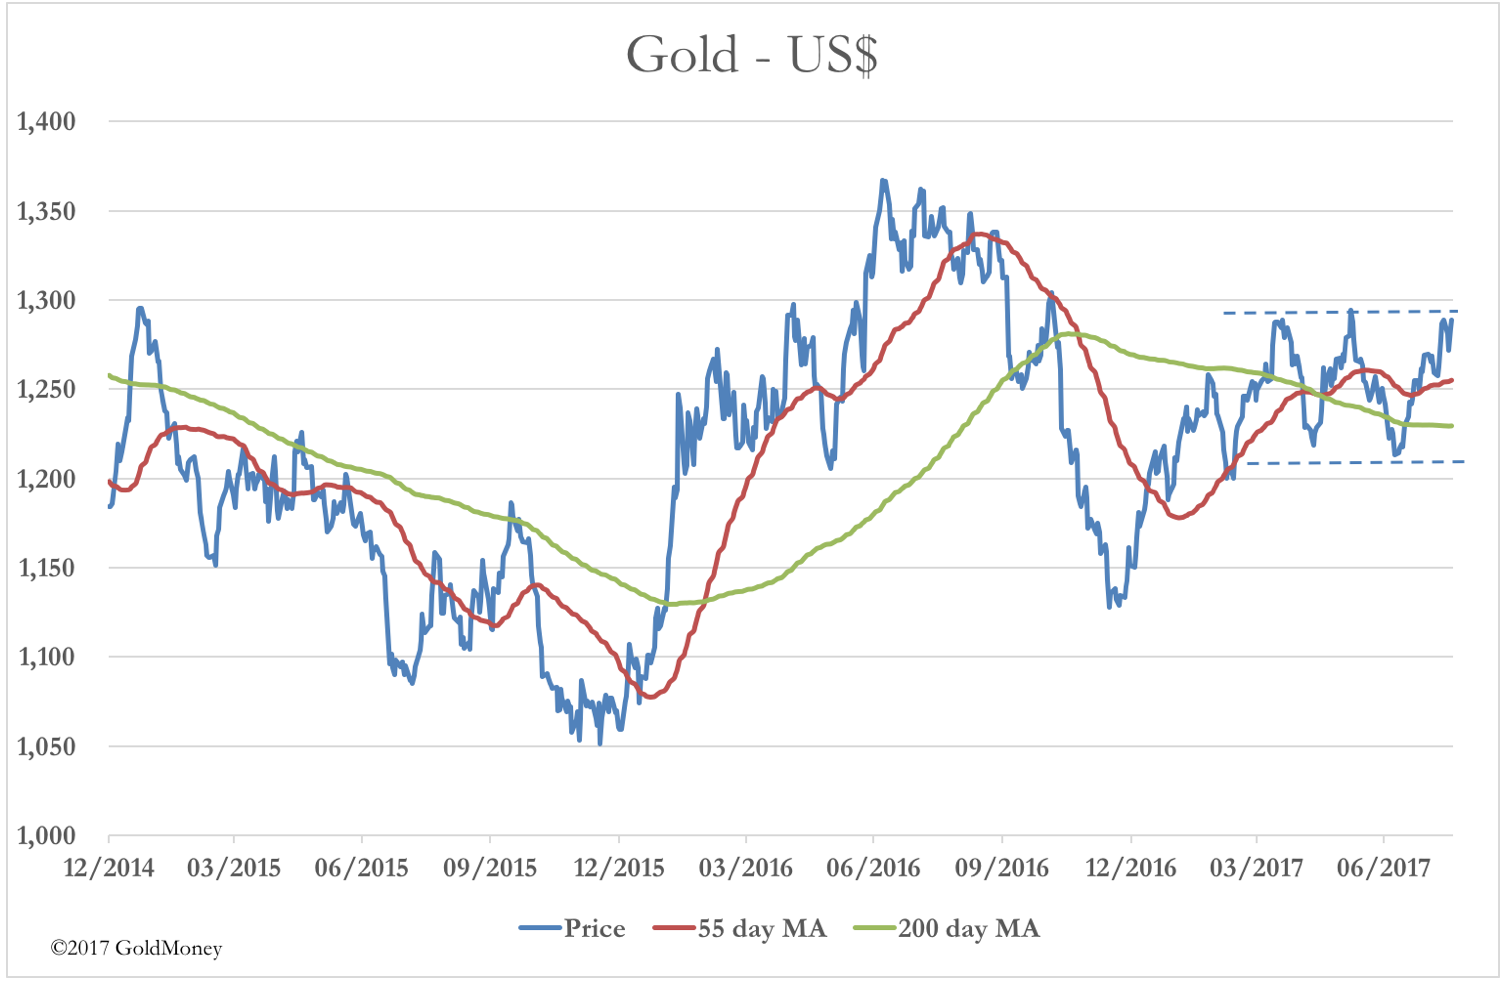 Gold US dollar moving average